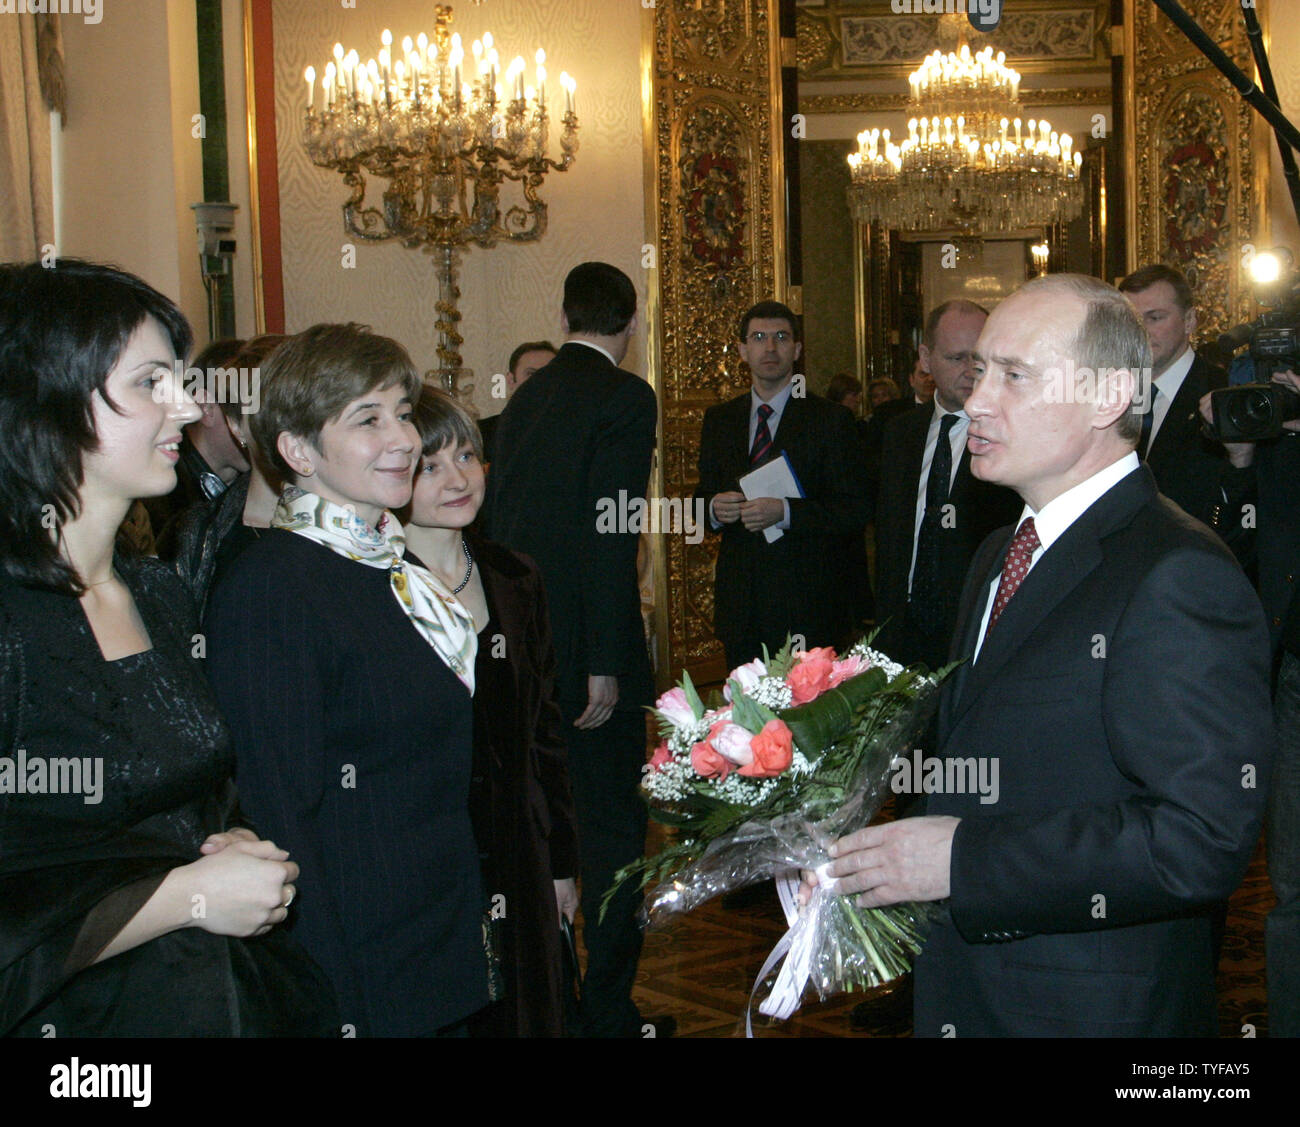 Russian President Vladimir Putin speaks with visitors during a ceremony celebrating the 200th anniversary of the Kremlin Museums in Moscow, March 7, 2006.  In 1806 Tsar Alexander I opened the ancient treasury of Russian Princes and Tsars, now called the Kremlin Museum. (UPI Photo/Anatoli Zhdanov) Stock Photo